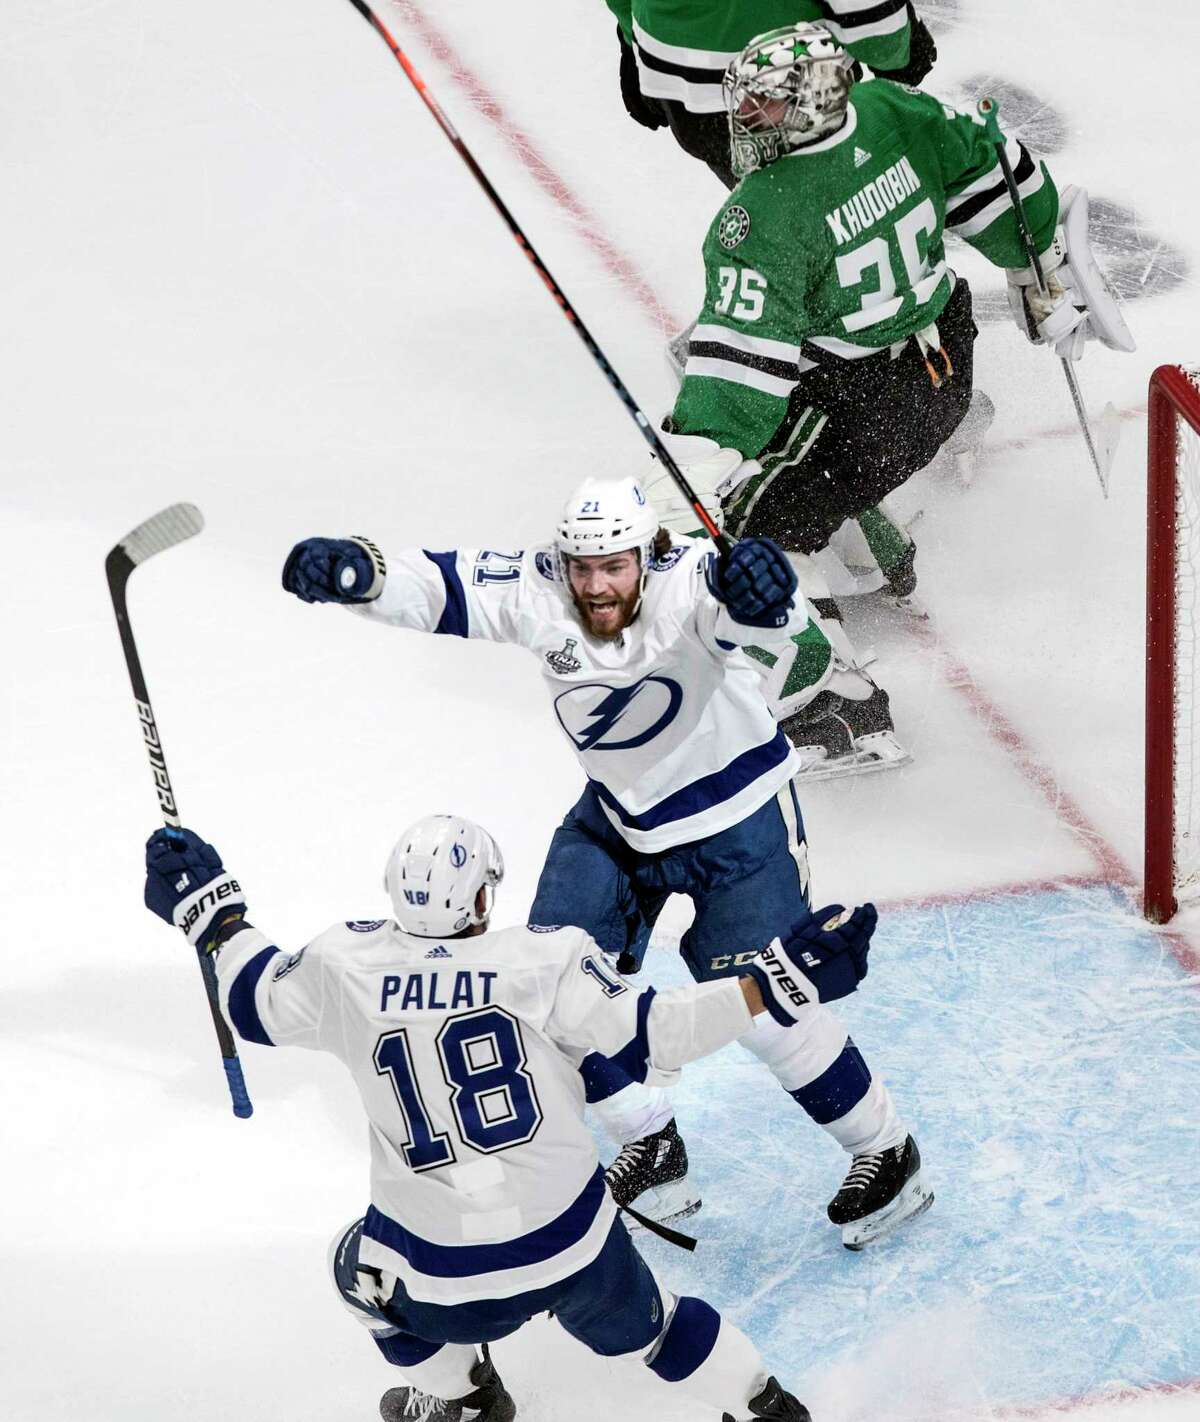 Tampa Bay Lightning center Brayden Point (21) celebrates his goal past Dallas Stars goaltender Anton Khudobin (35) with with teammate Ondrej Palat (18) during the second period of Game 3 of the NHL hockey Stanley Cup Final, Wednesday, Sept. 23, 2020, in Edmonton, Alberta. (Jason Franson/The Canadian Press via AP)